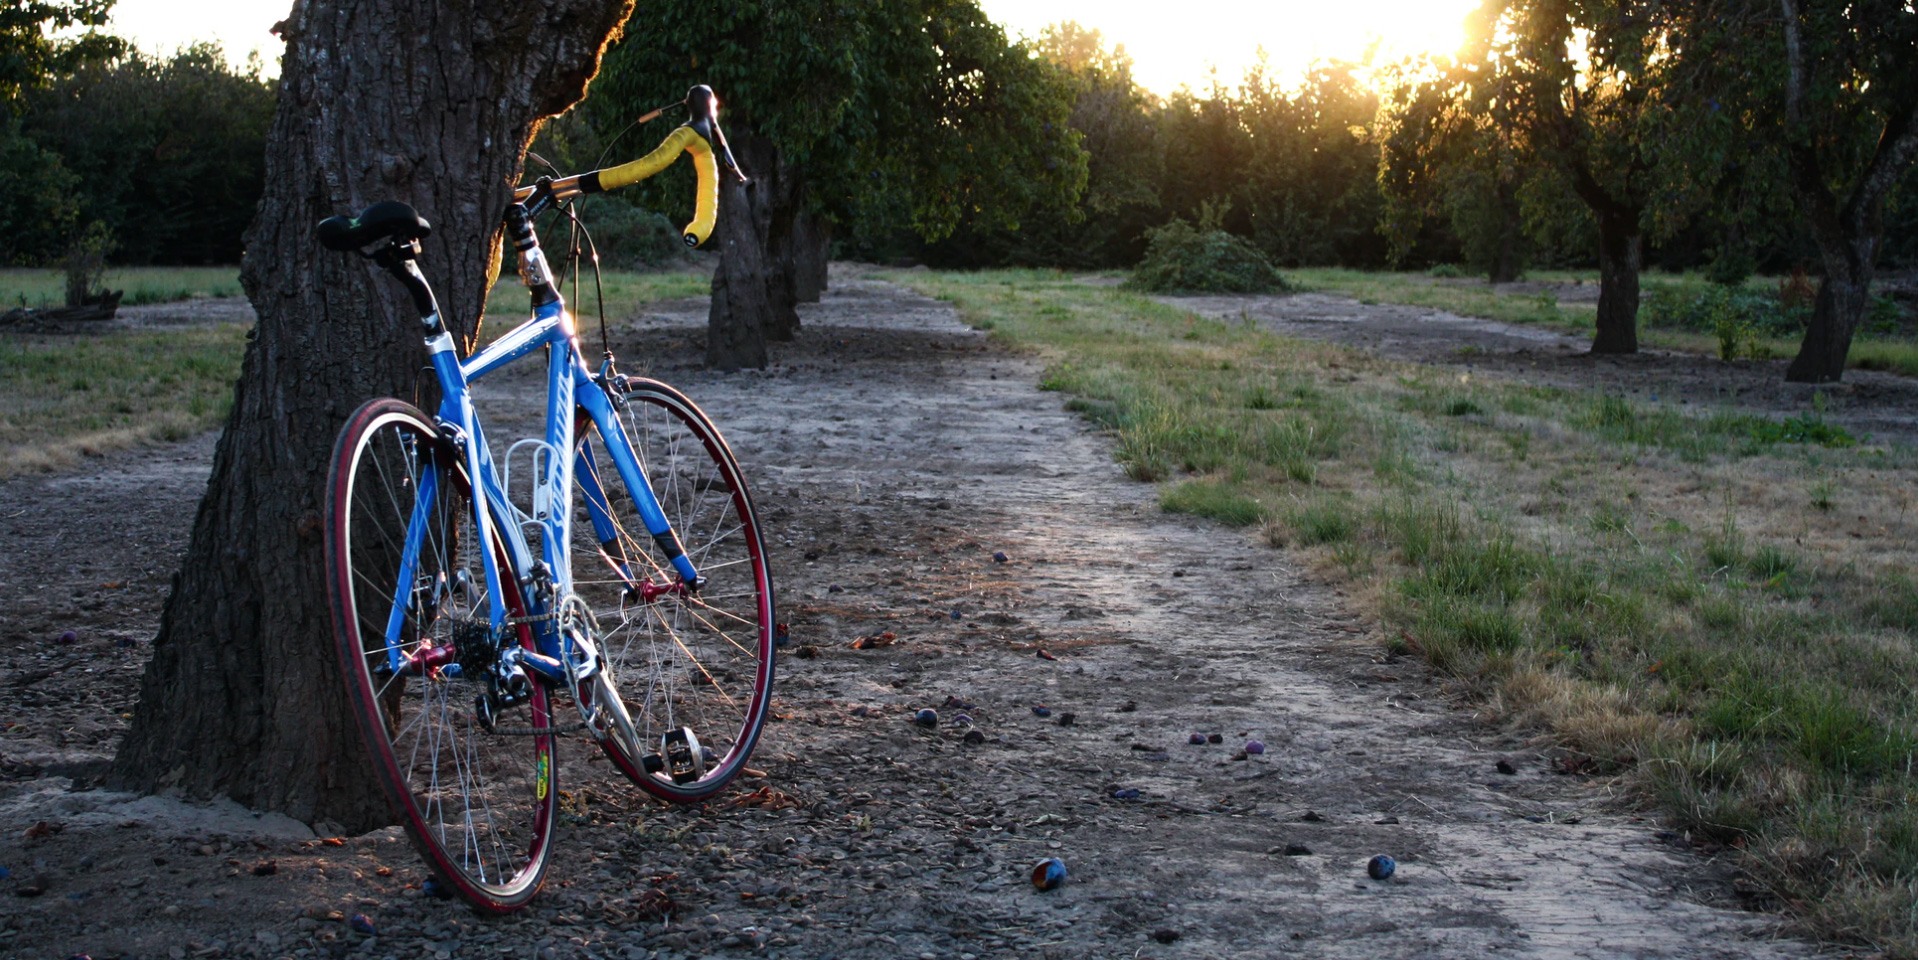 A bike leaning against a tree on a trail.